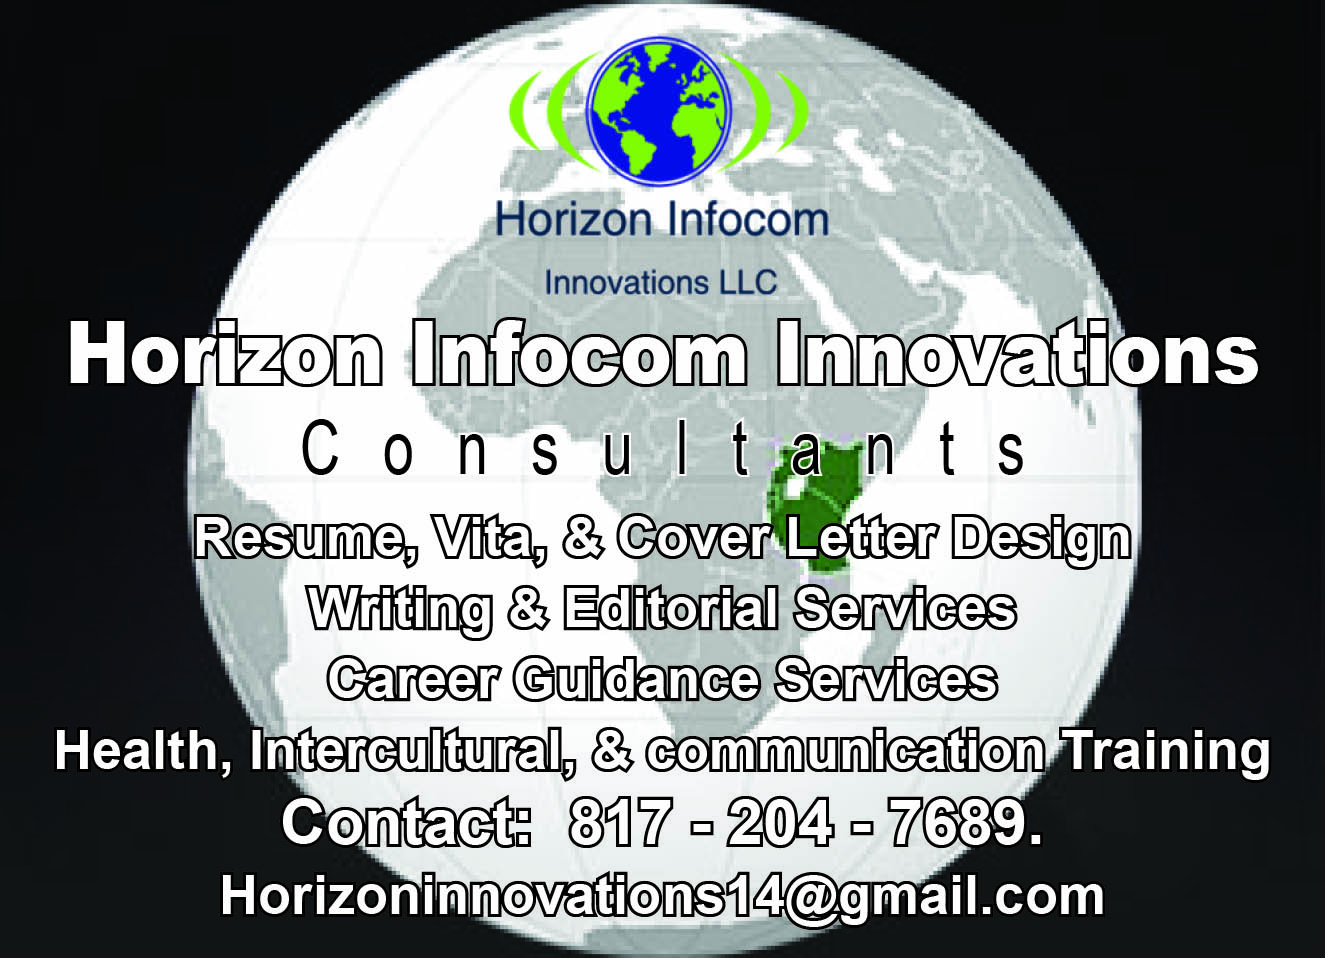 Horizon Innovations LLC